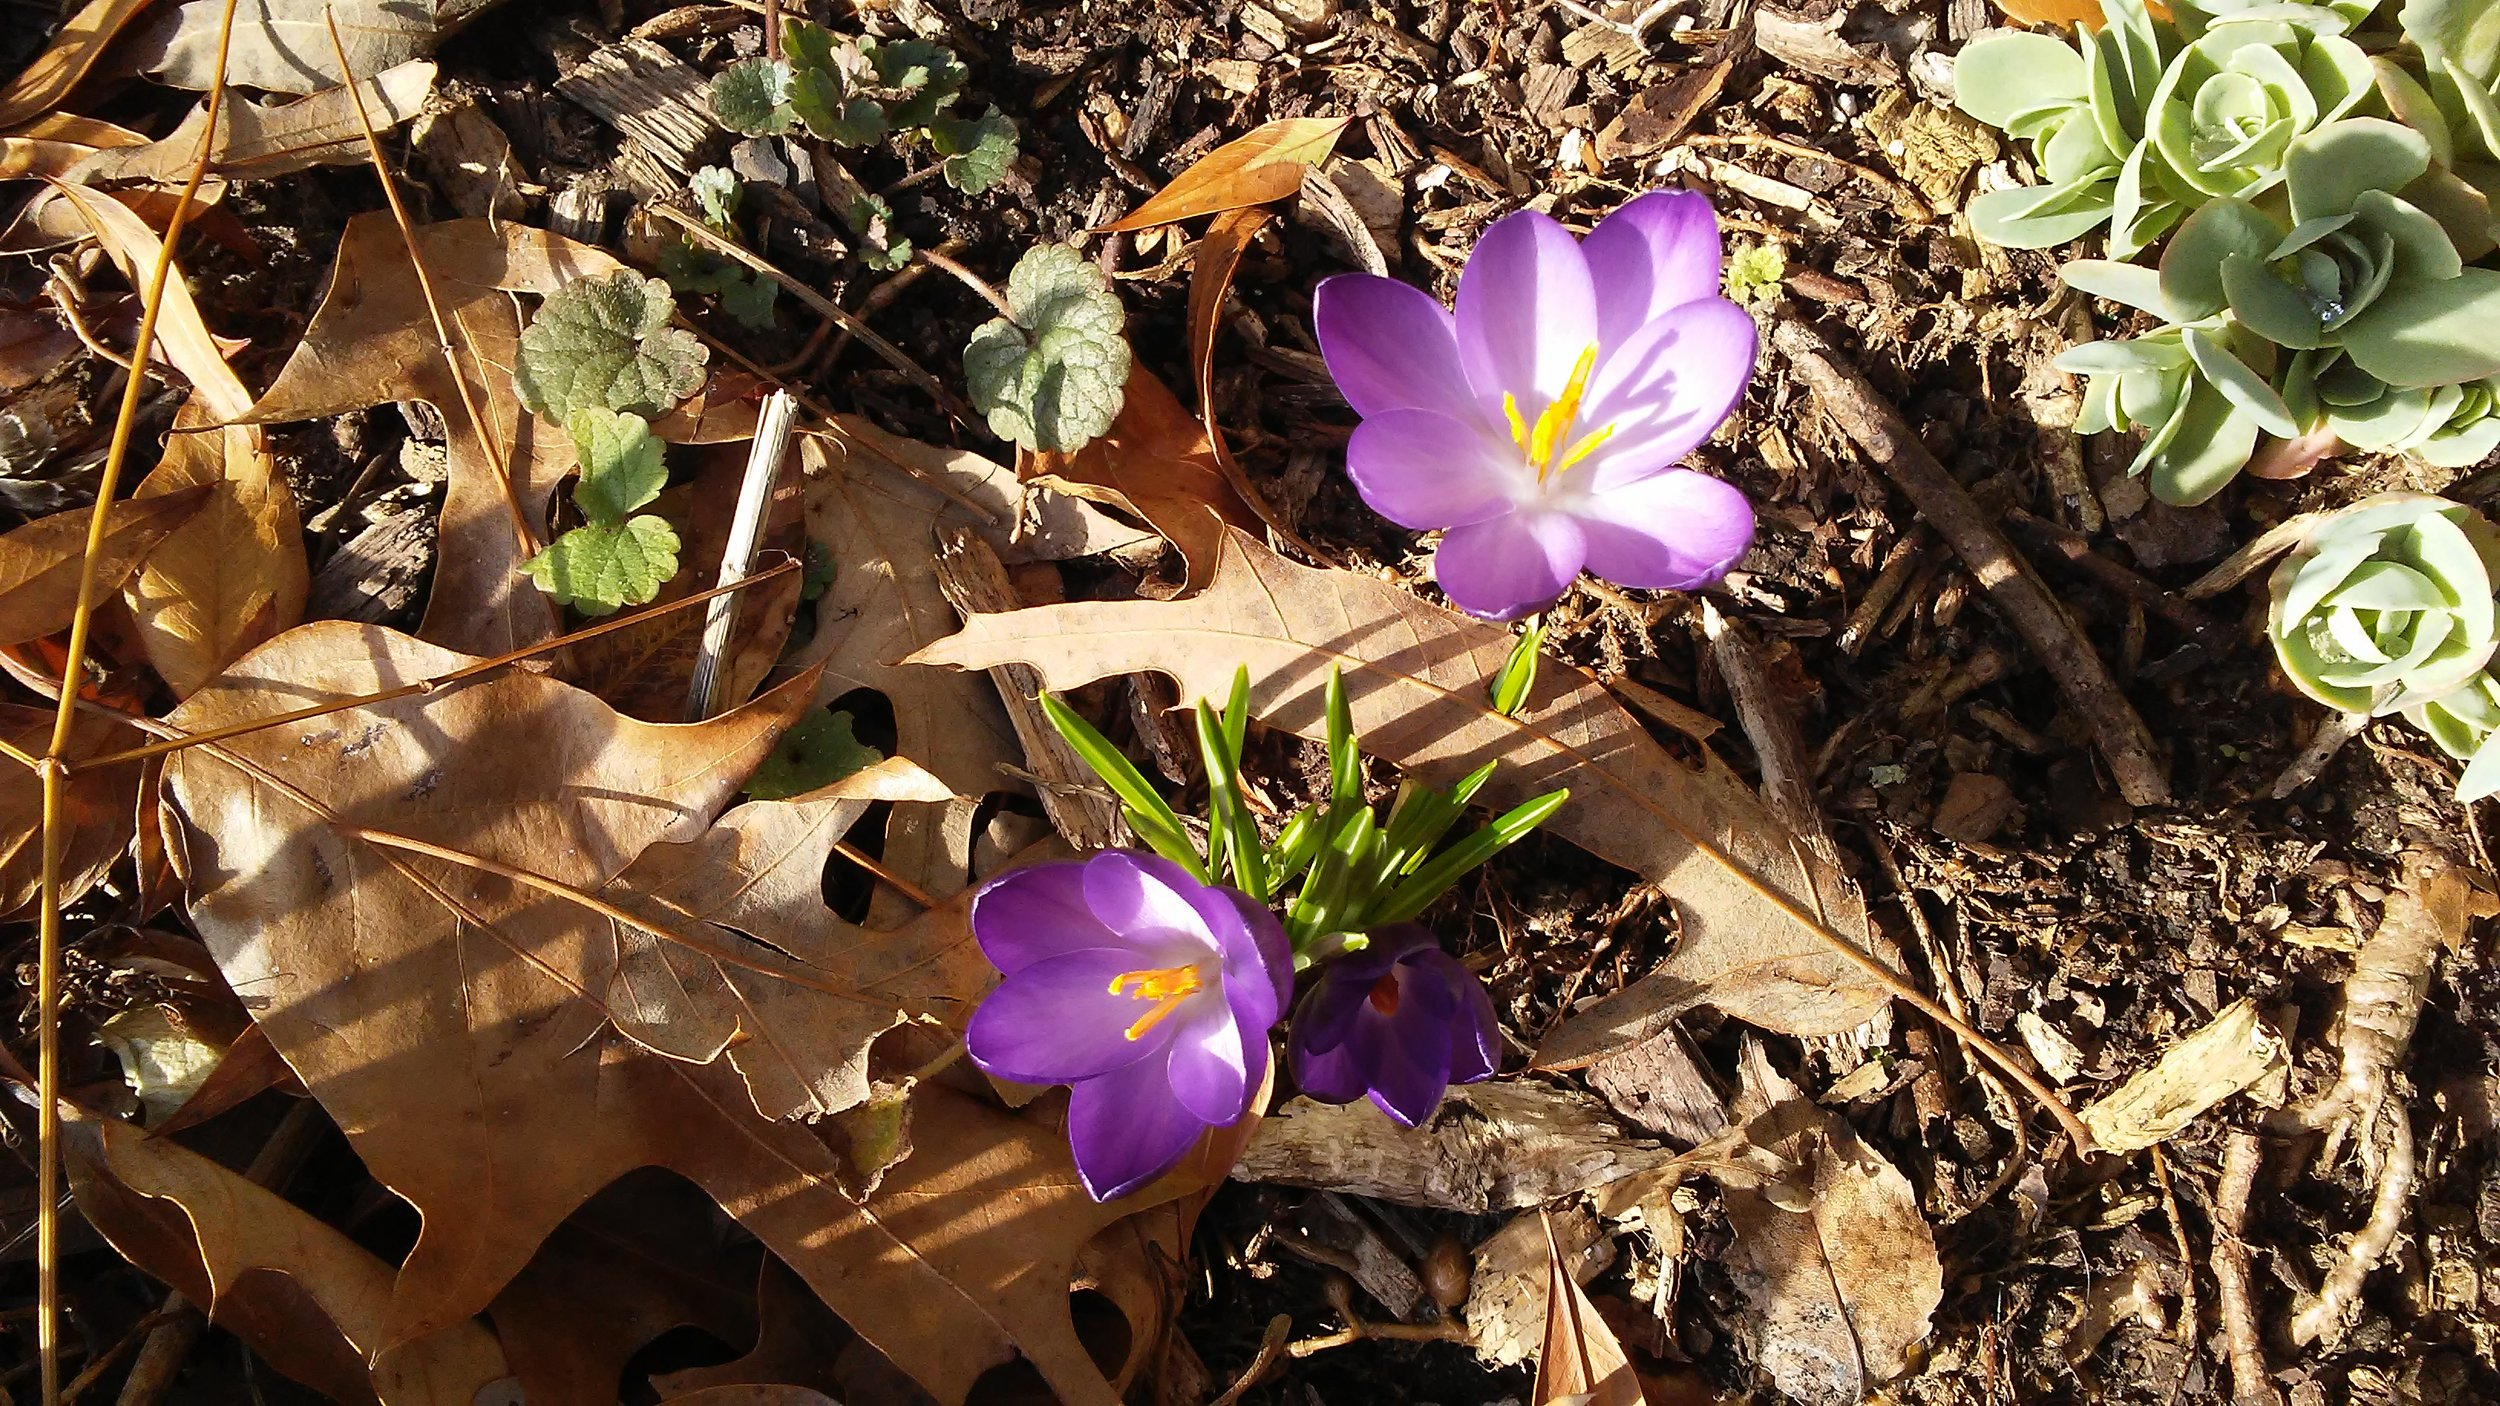 The power of the tiny crocus leaf piercing the oak leaf as it grows, blooming in the February warm-up in Maryland.